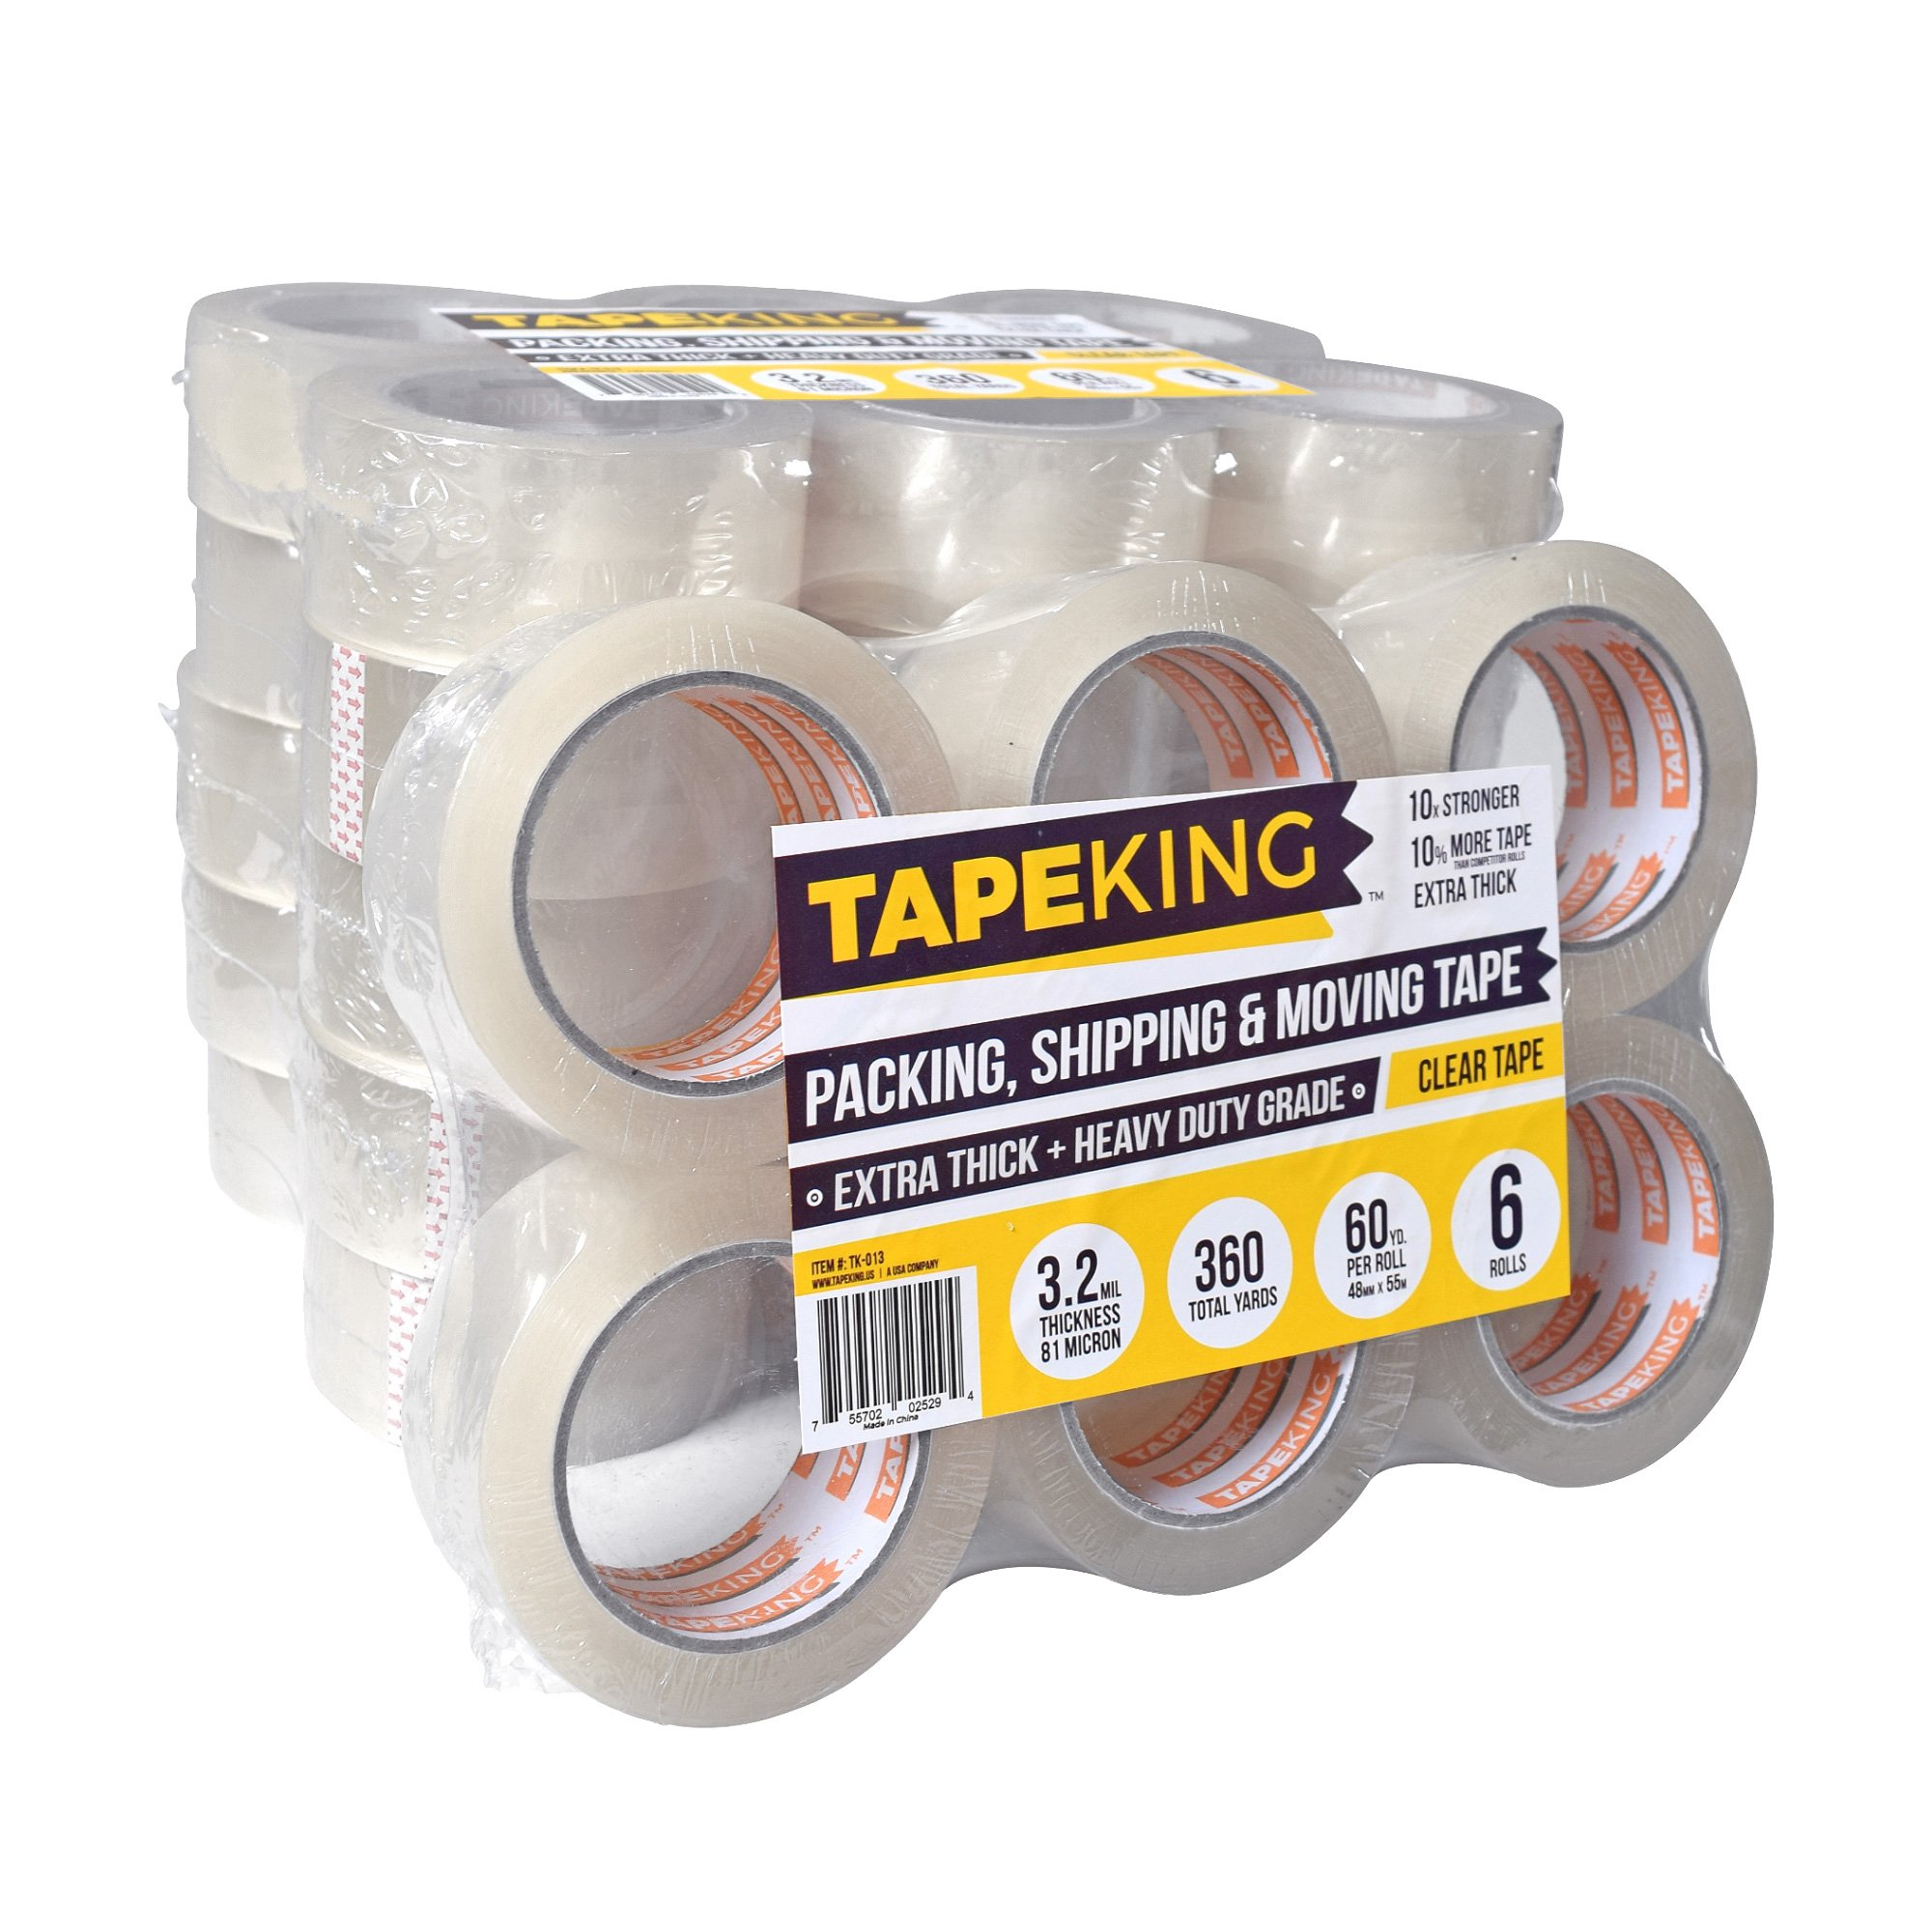 Tape King Clear Packing Tape Super Thick - 60 Yards Per Roll (Case of 36 Rolls) - Strong 3.2mil, Heavy Duty Adhesive Commercial Depot Tape for Moving, Sealing, Packaging Shipping, Office & Storage by Tape King (Image #1)